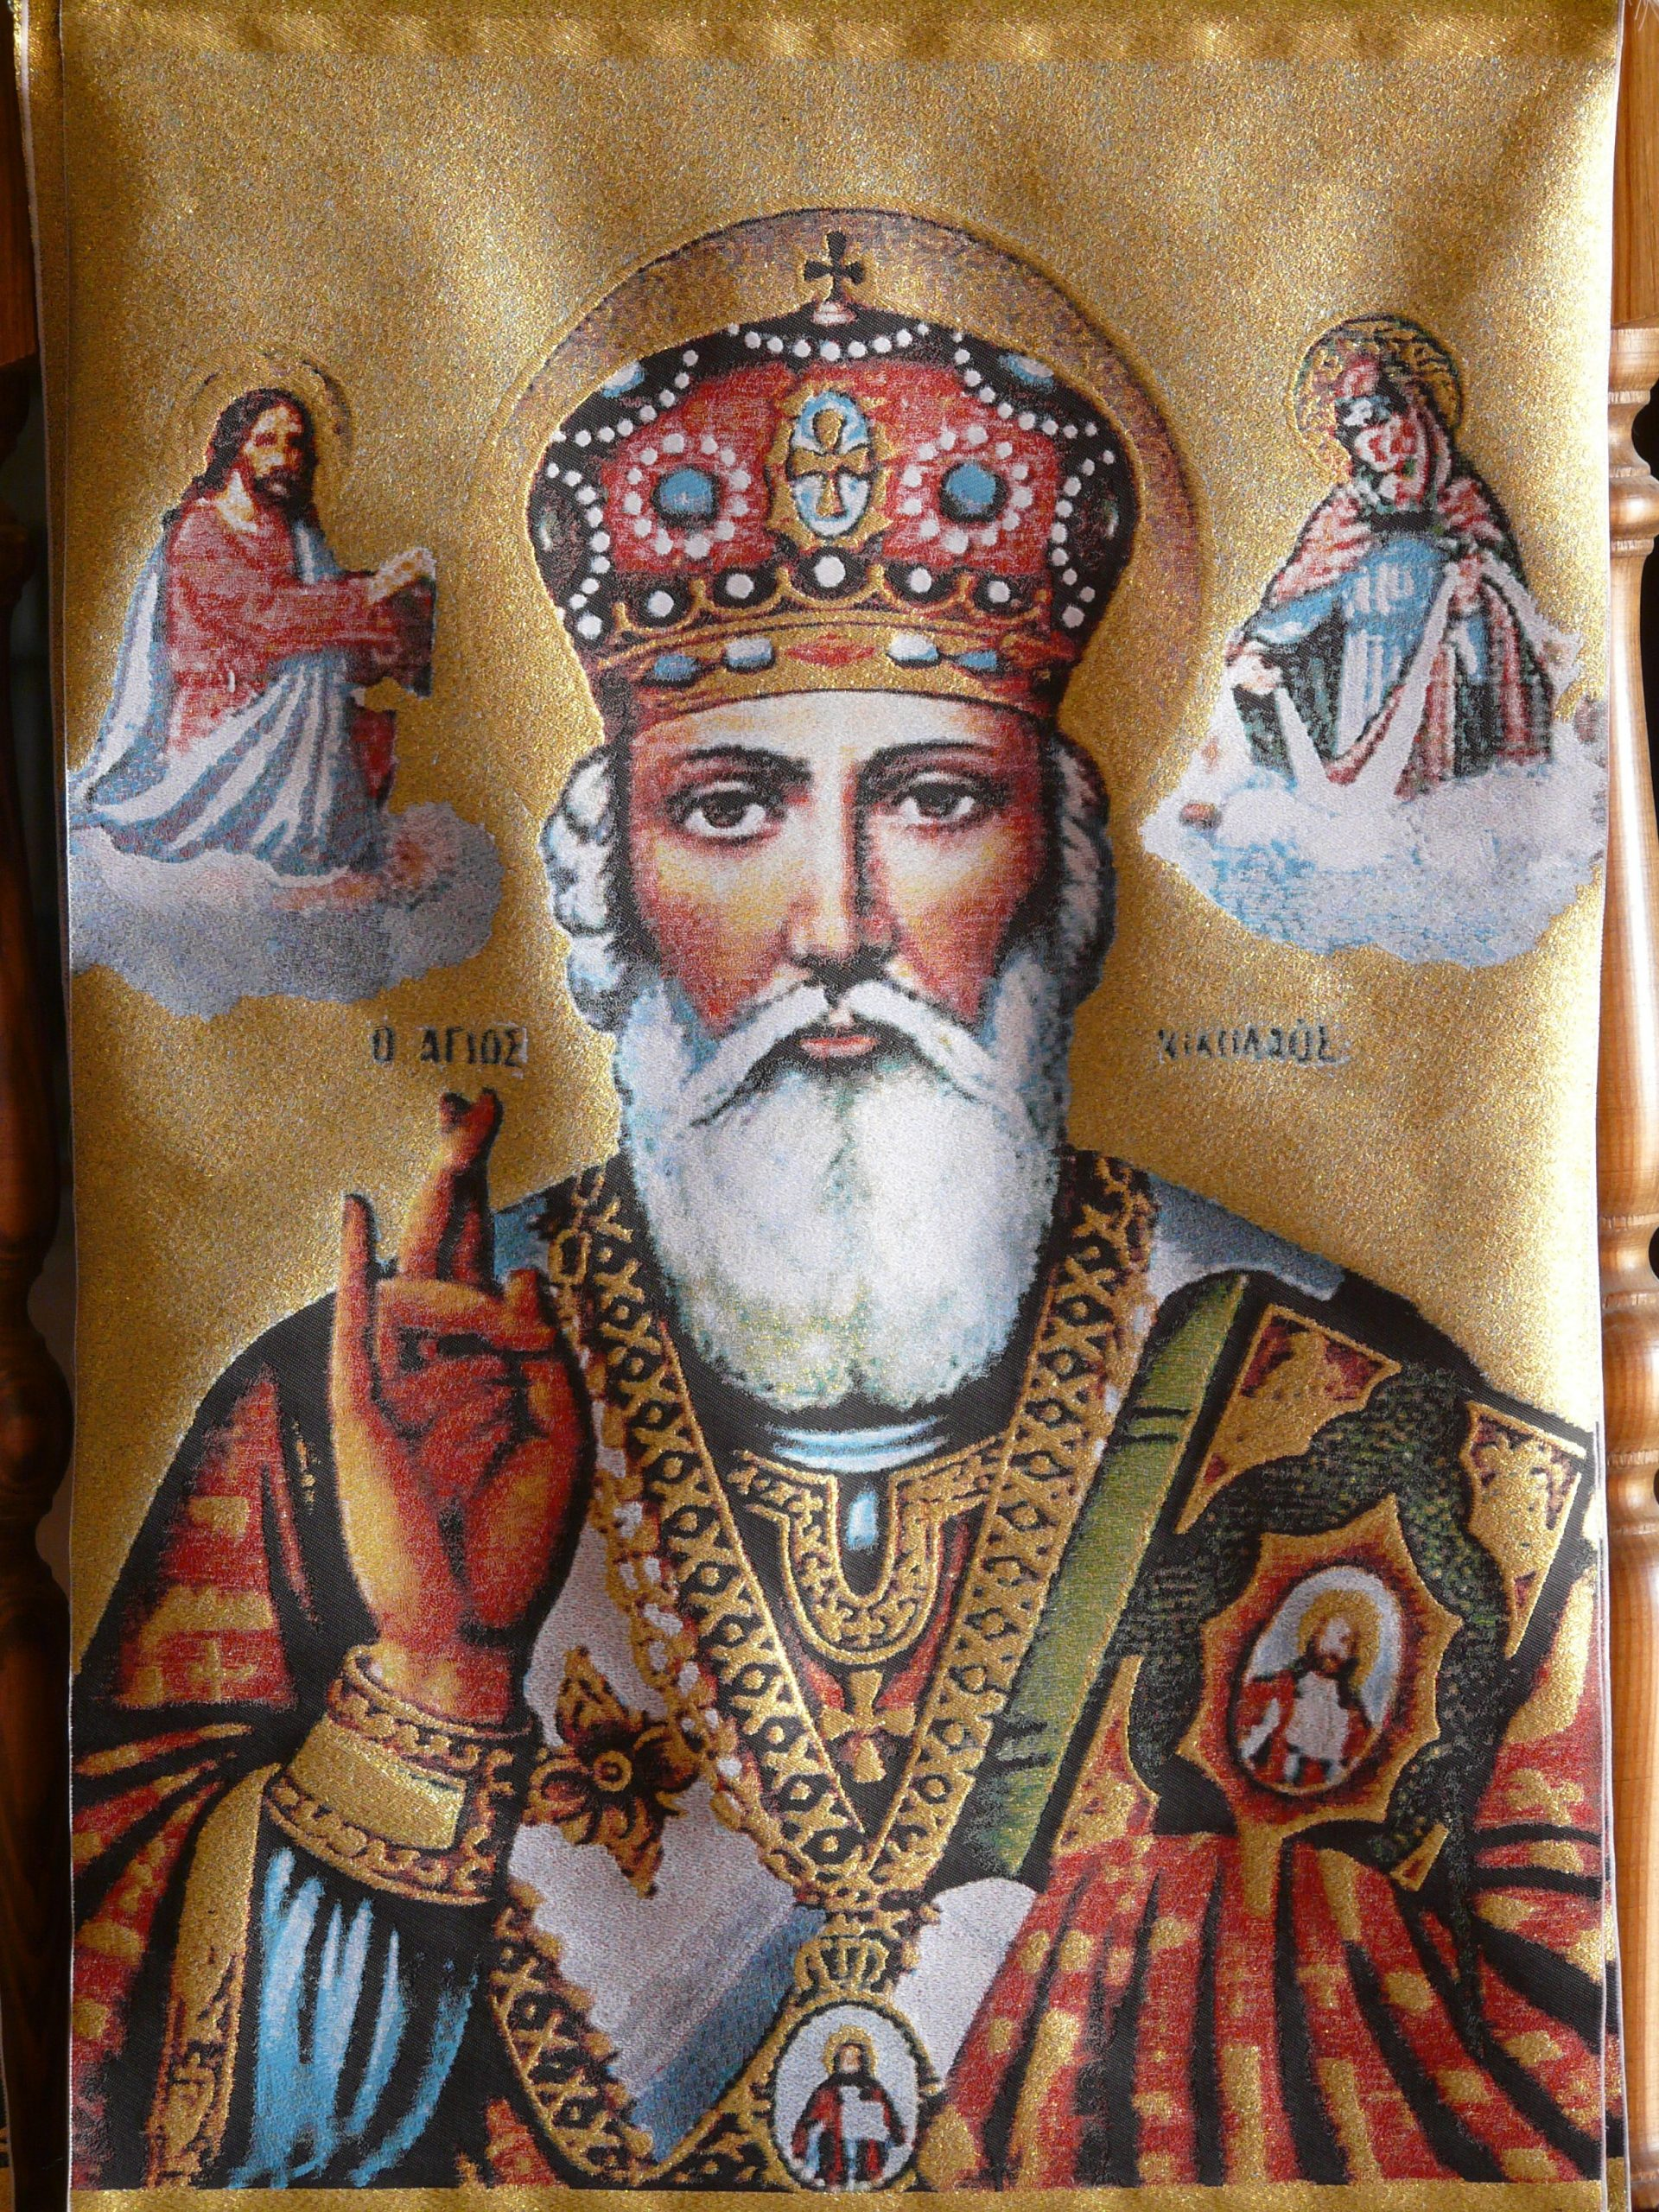 Legends tell of Saint Nicholas's acts of charity